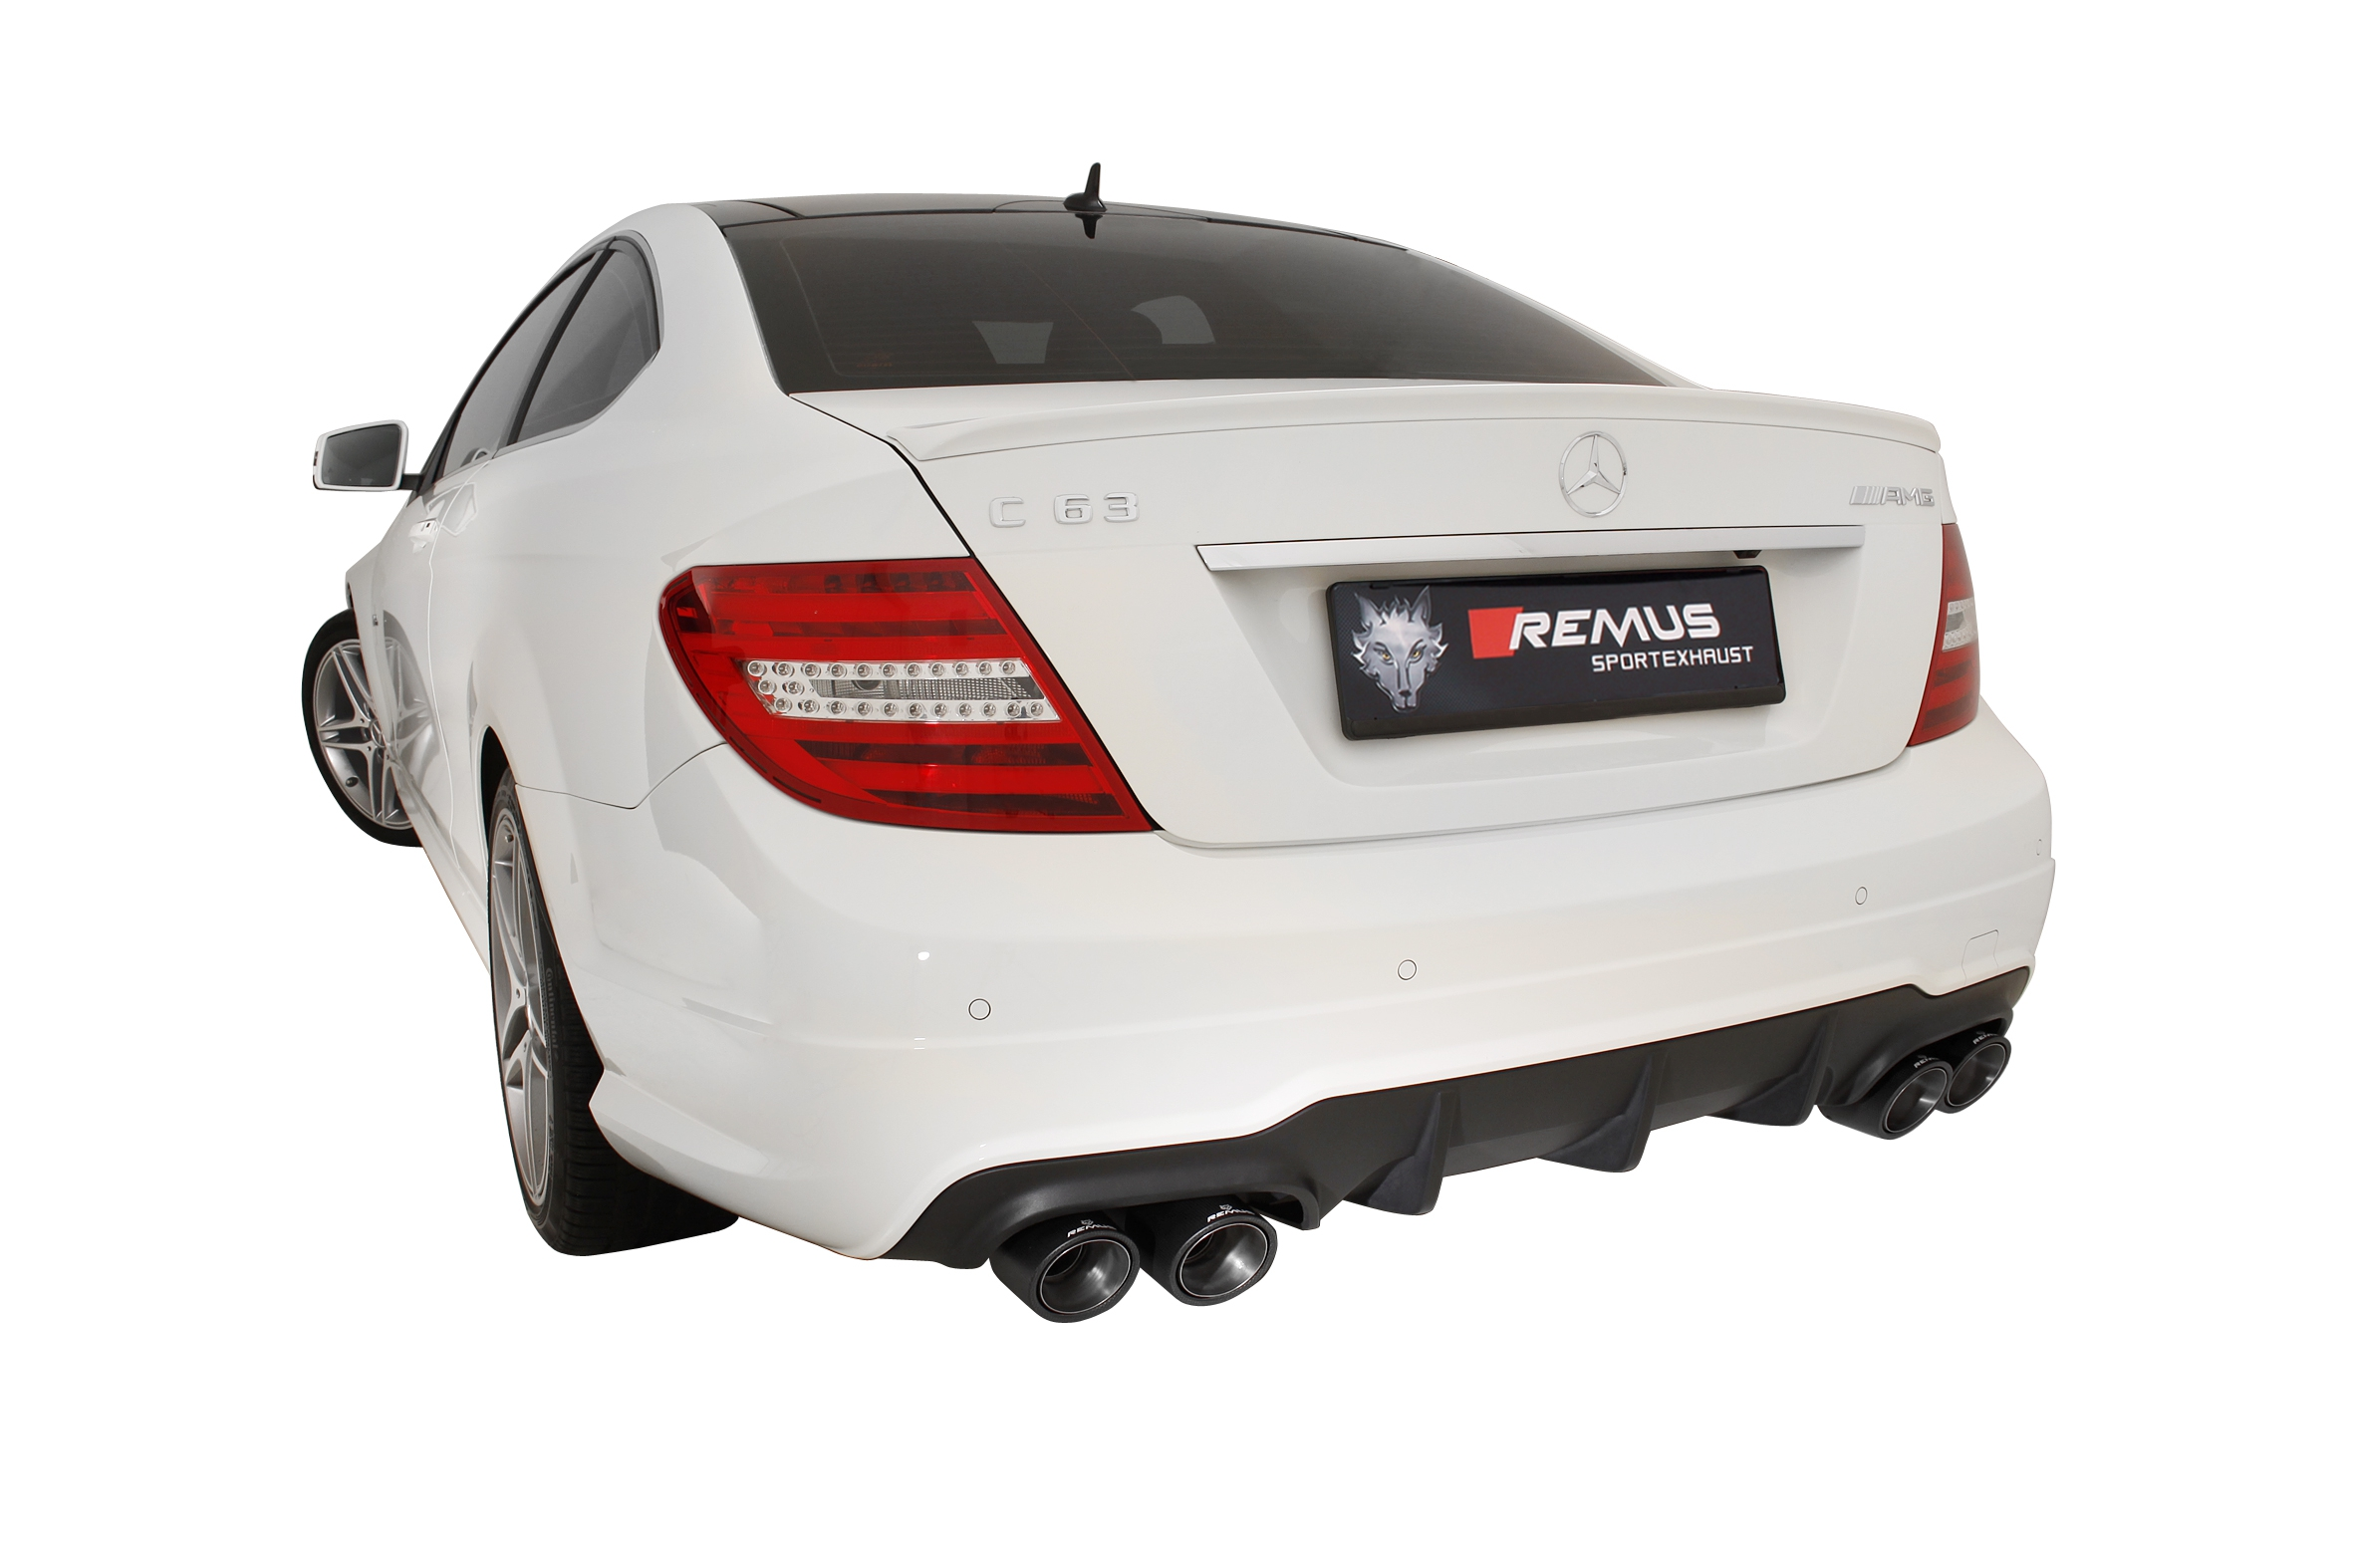 REMUS product information 10-2016 MERCEDES BENZ C63 AMG, Typ